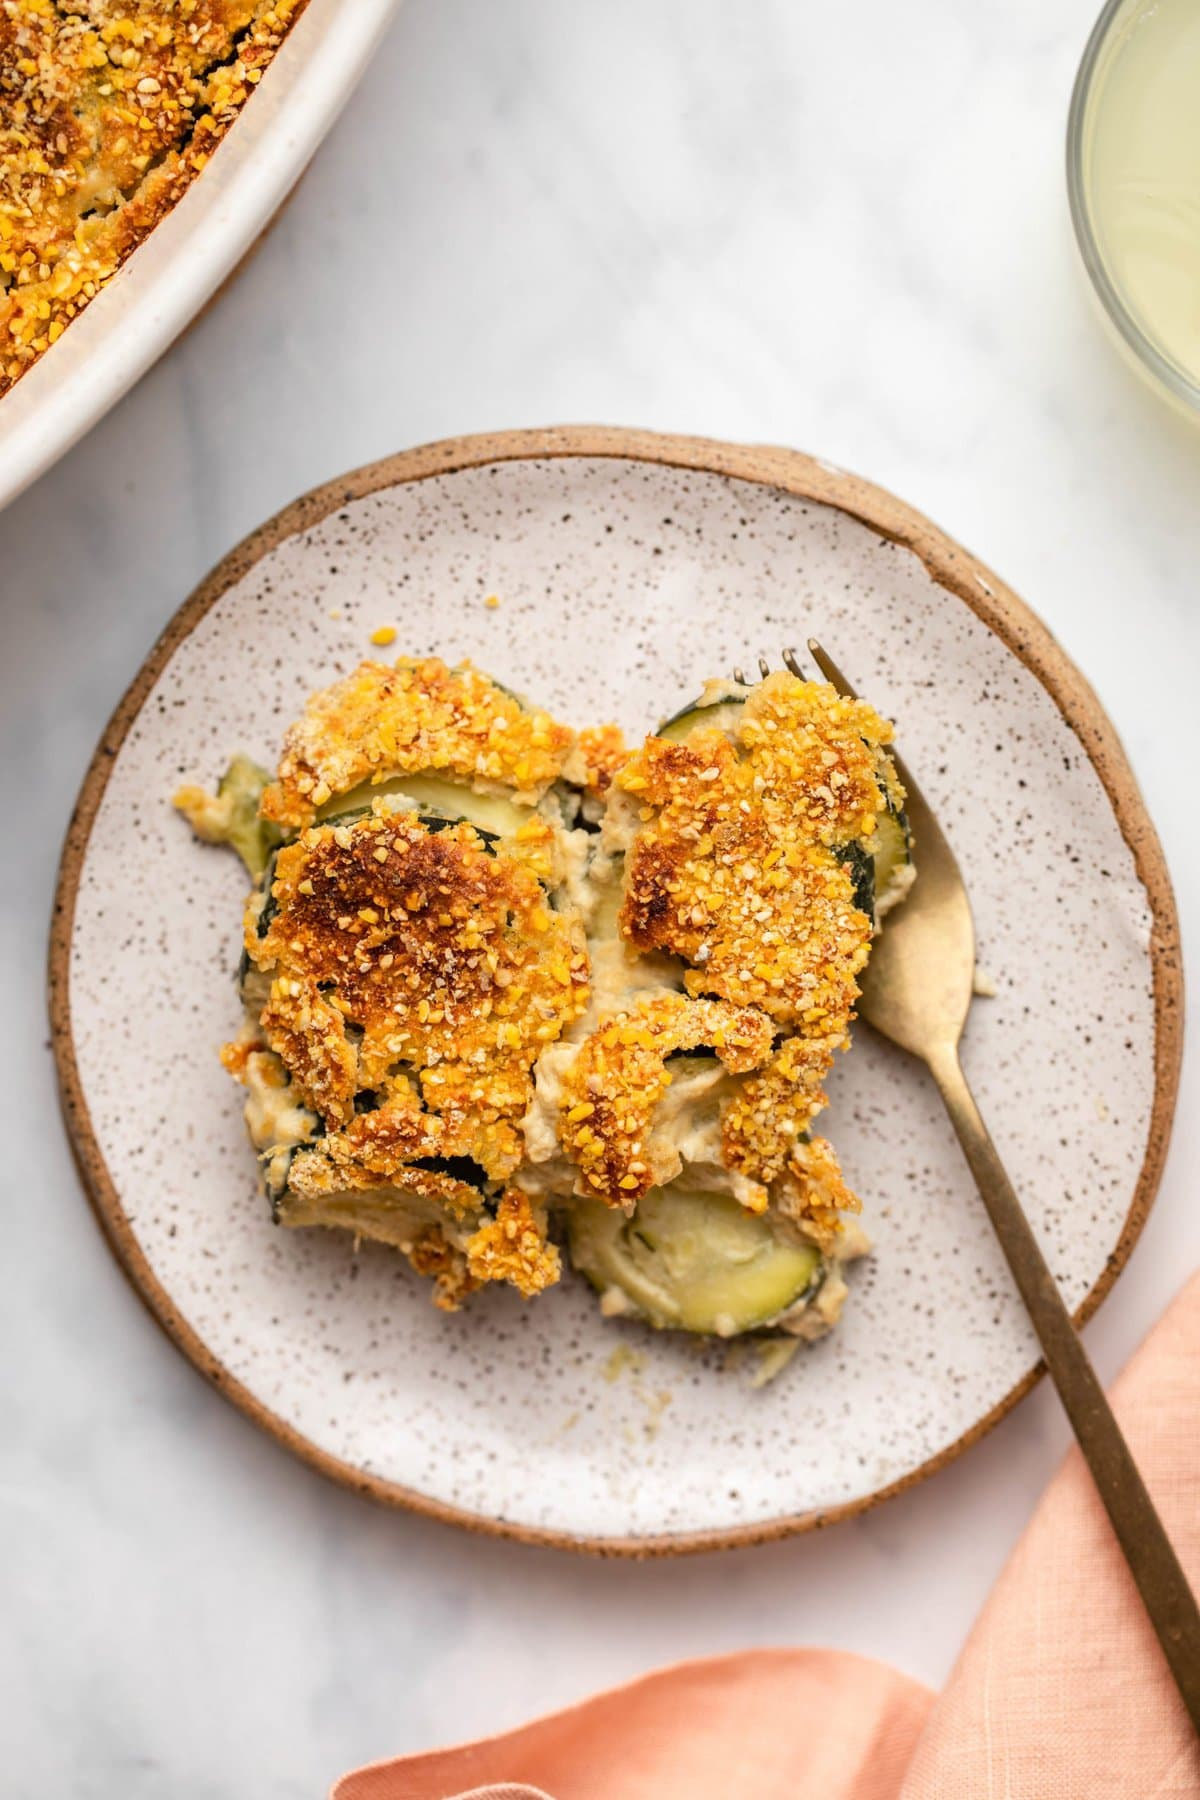 Close-up photo of zucchini gratin on small white plate with gold fork